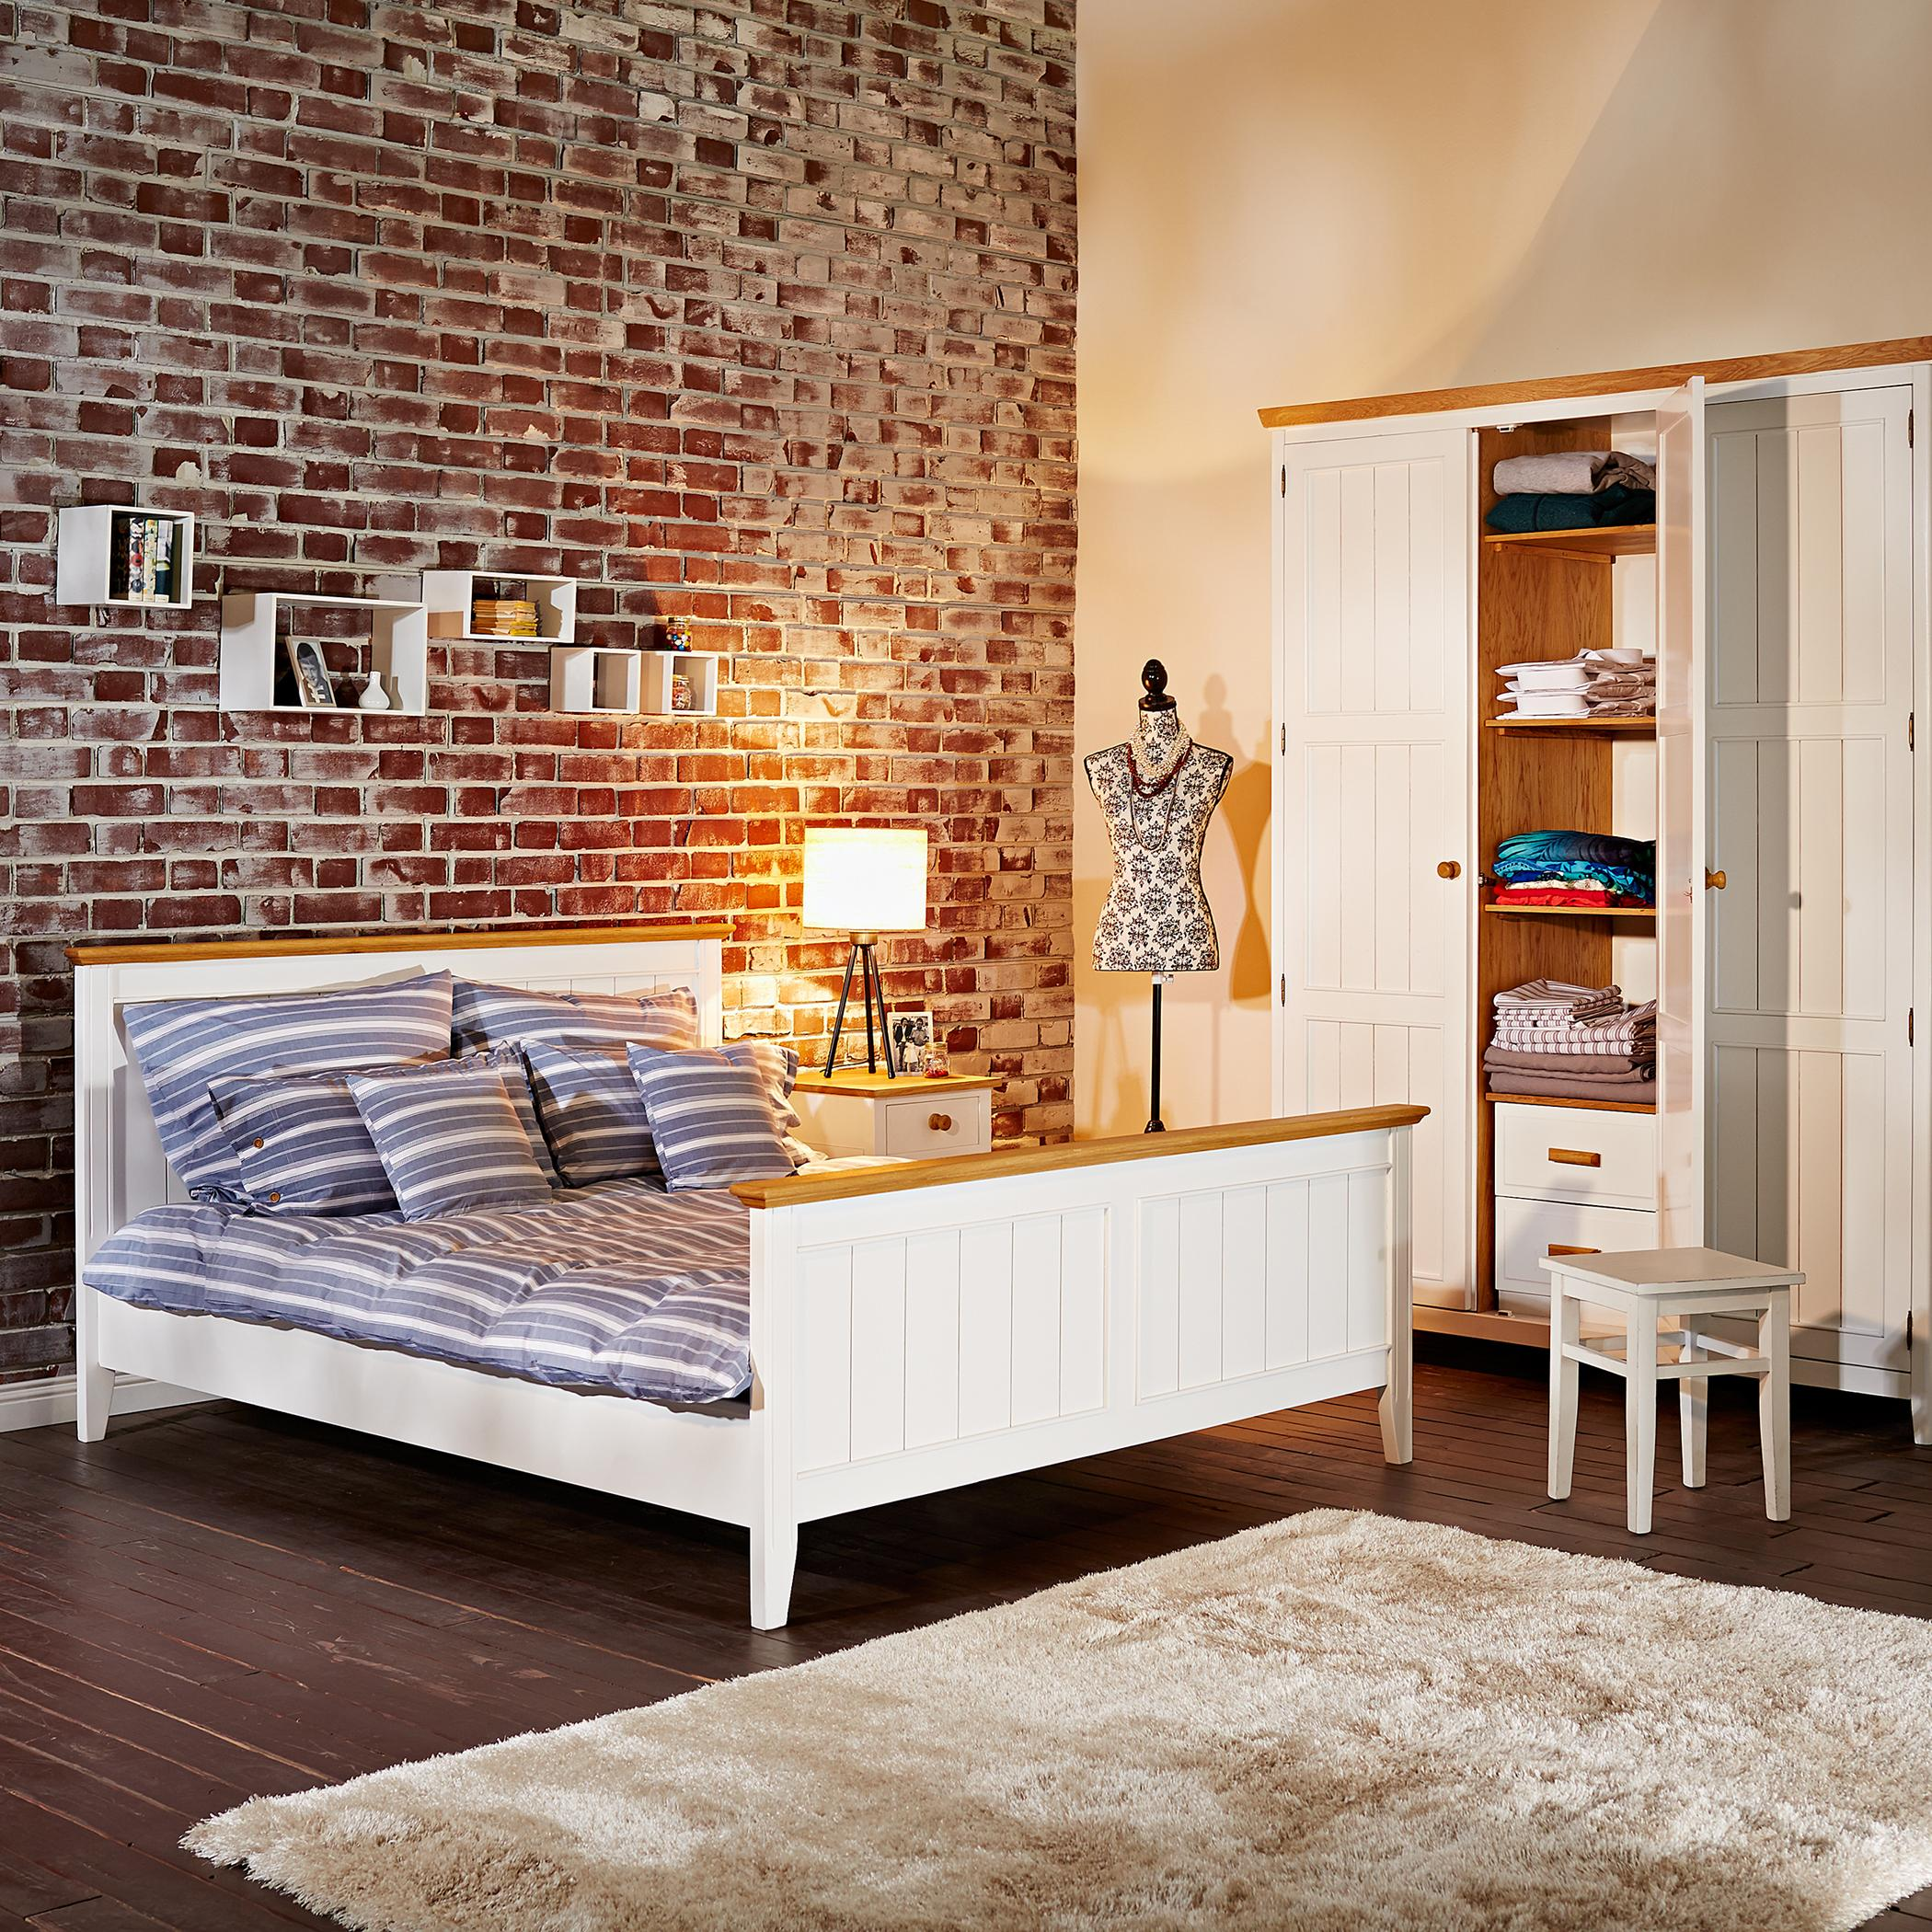 skandinavischer stil und used look bett dielenbode. Black Bedroom Furniture Sets. Home Design Ideas